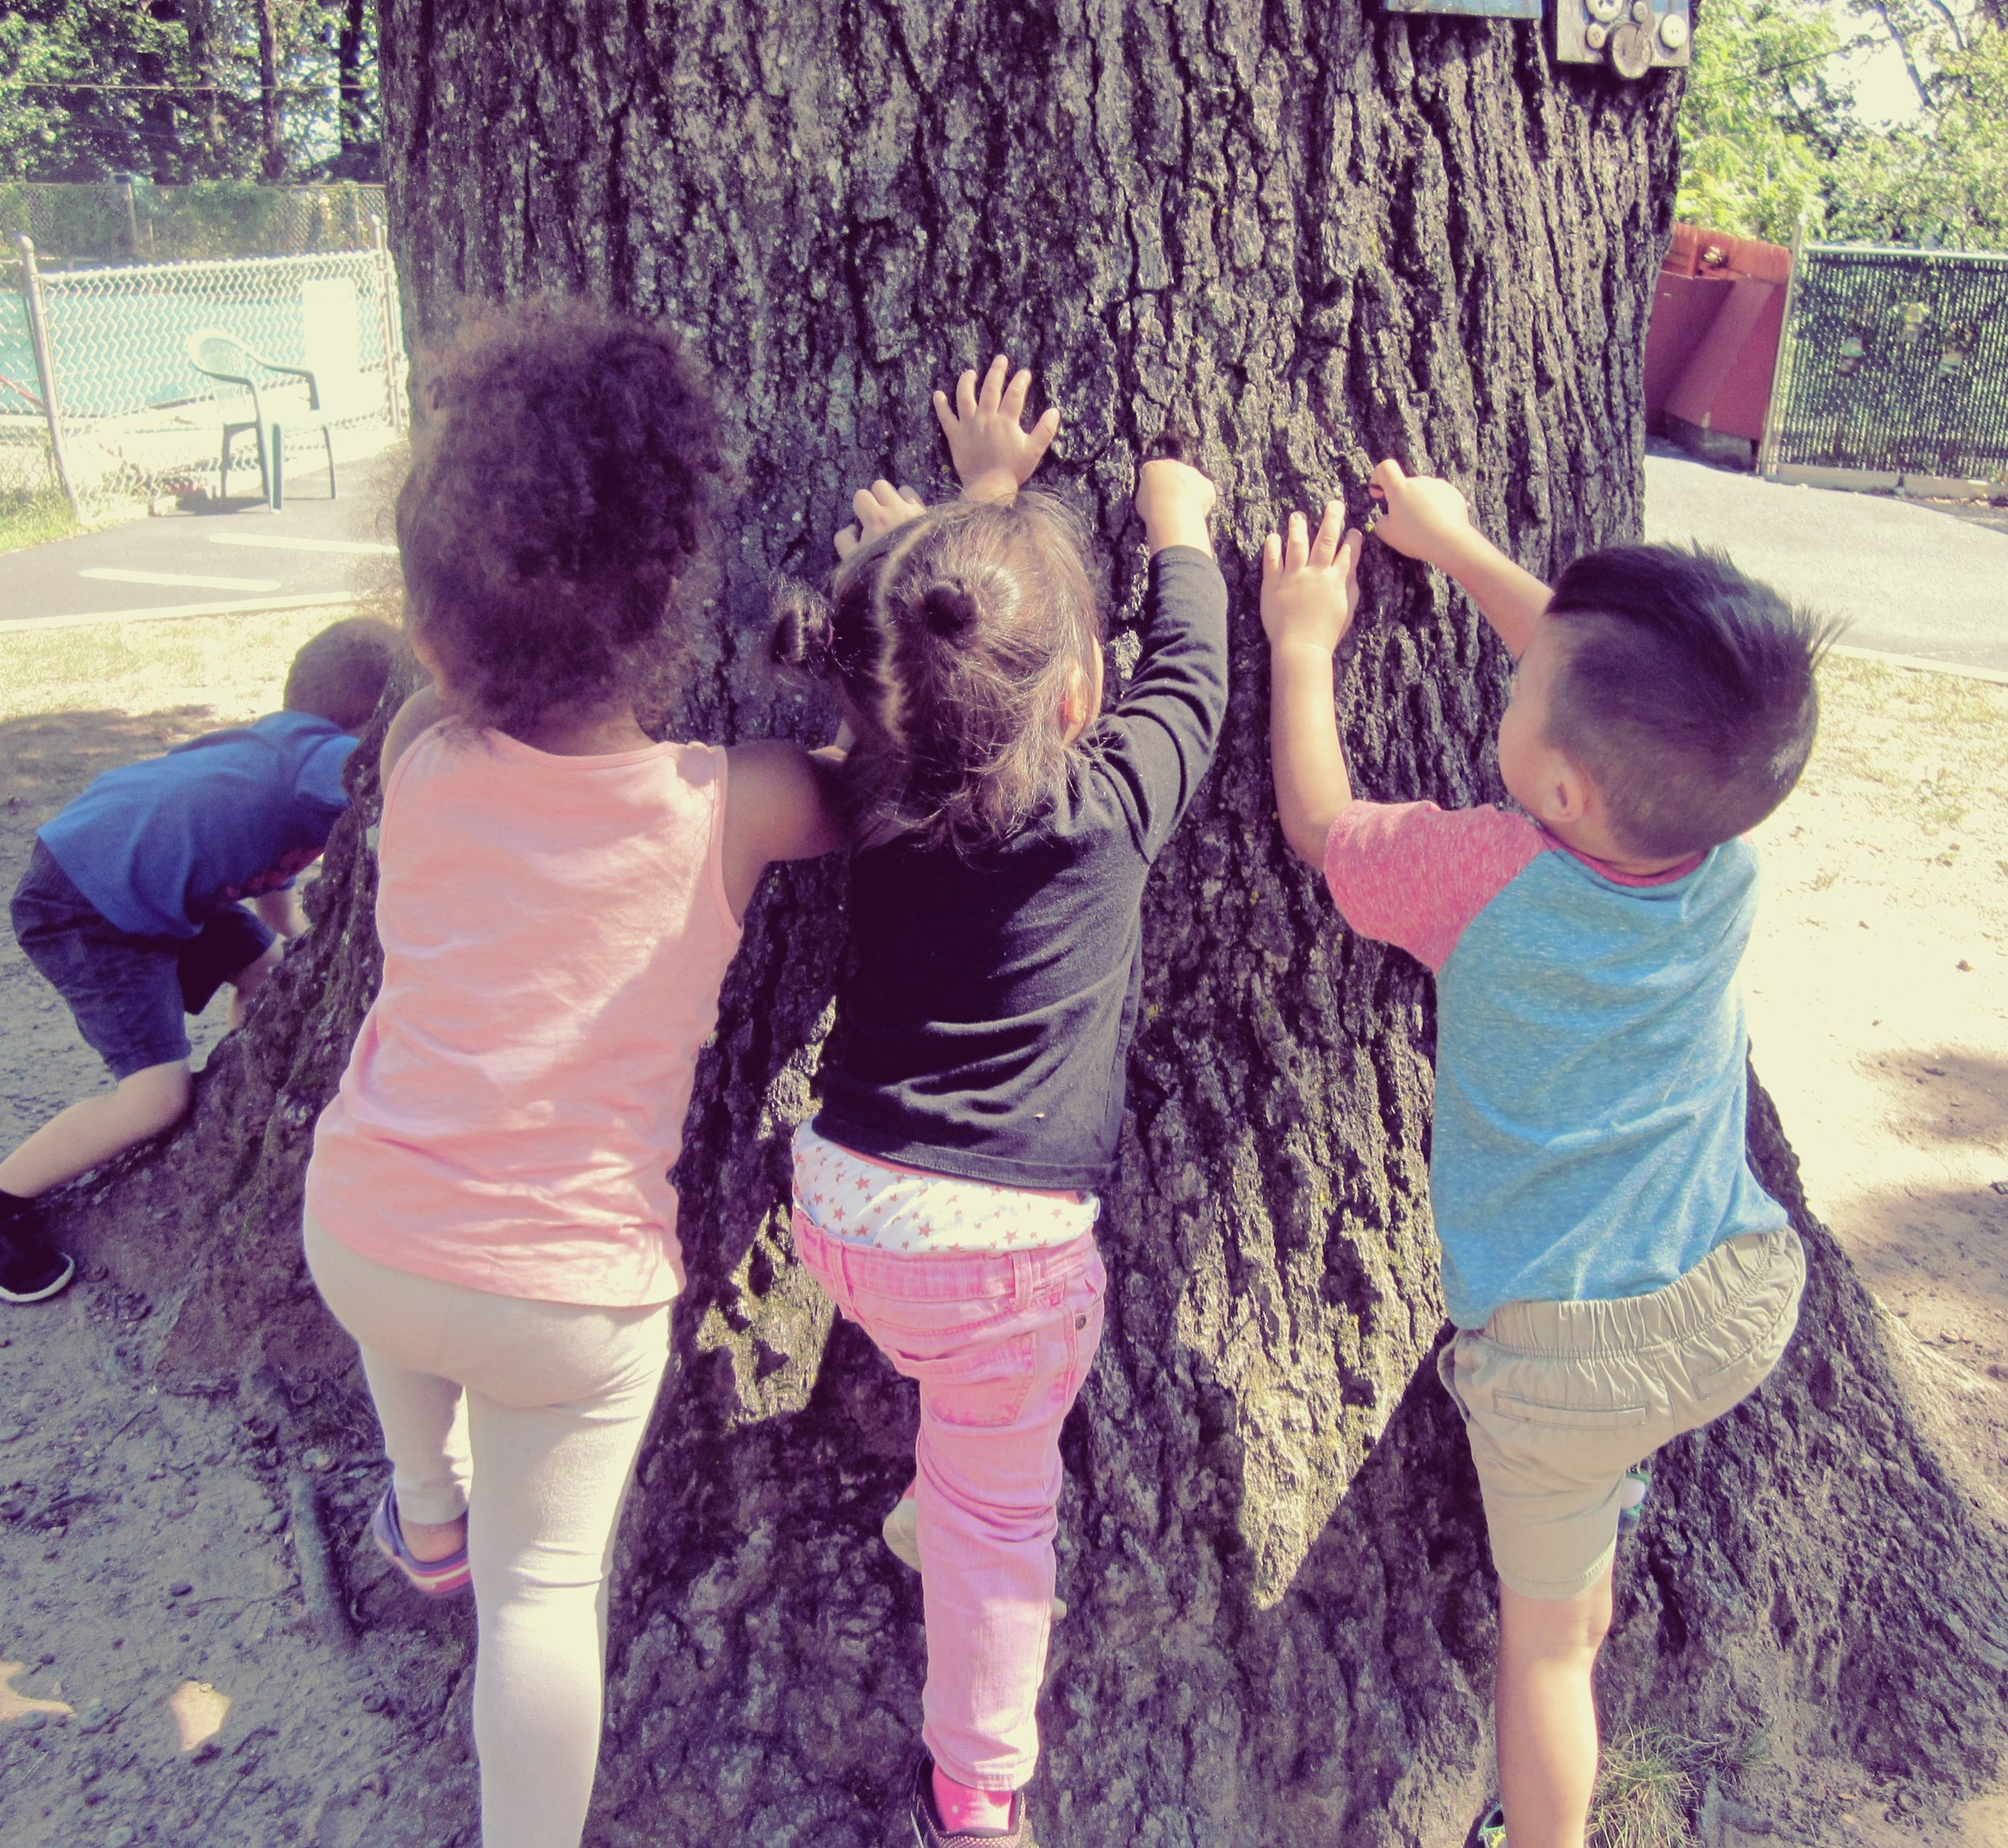 Nature enhances curiosity and creativity to explore and experience life. At Jin-A Child Care Center during outdoor free play.